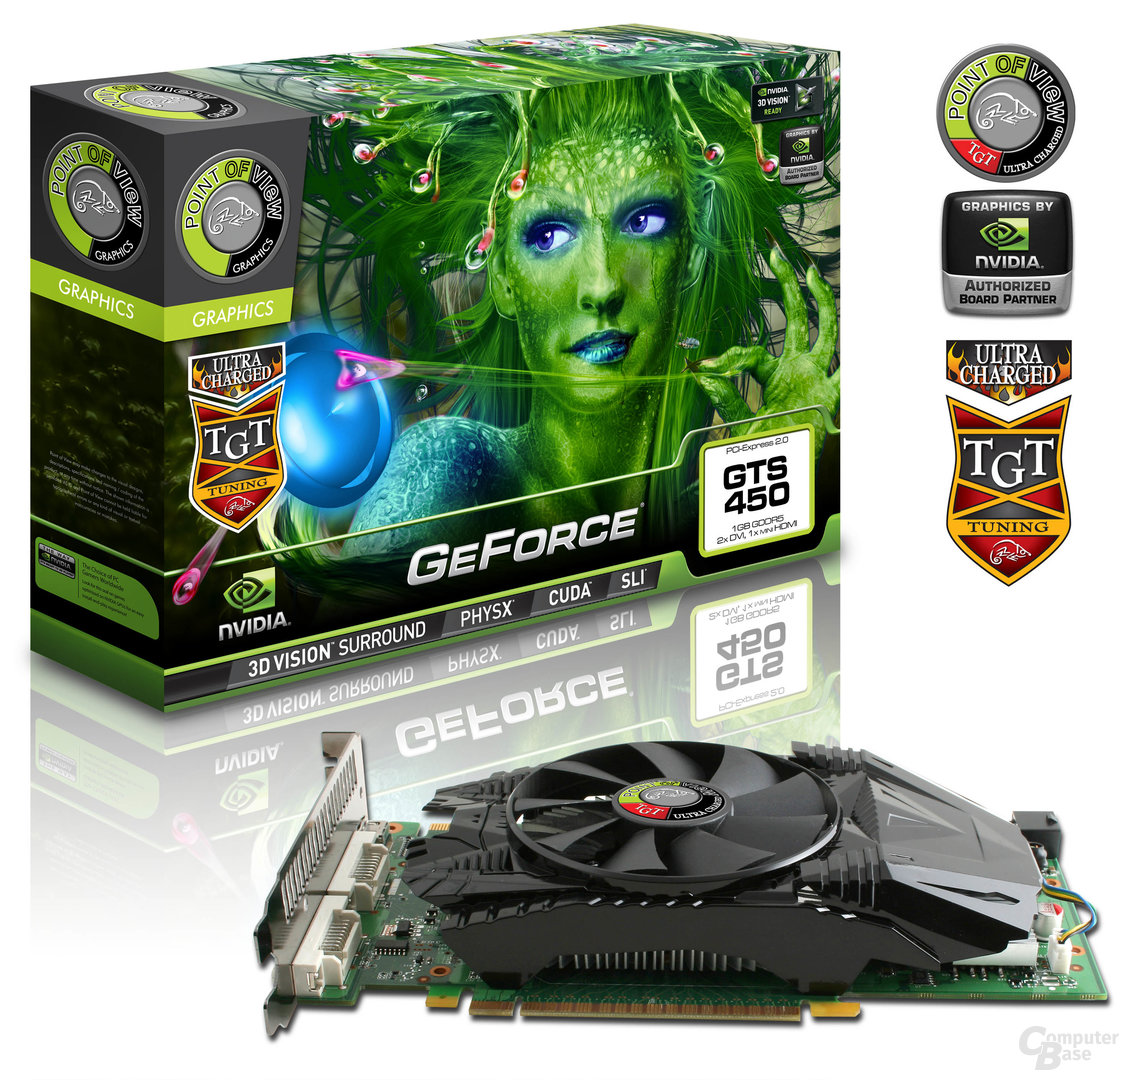 POV/TGT GeForce GTS 450 Ultra Charged